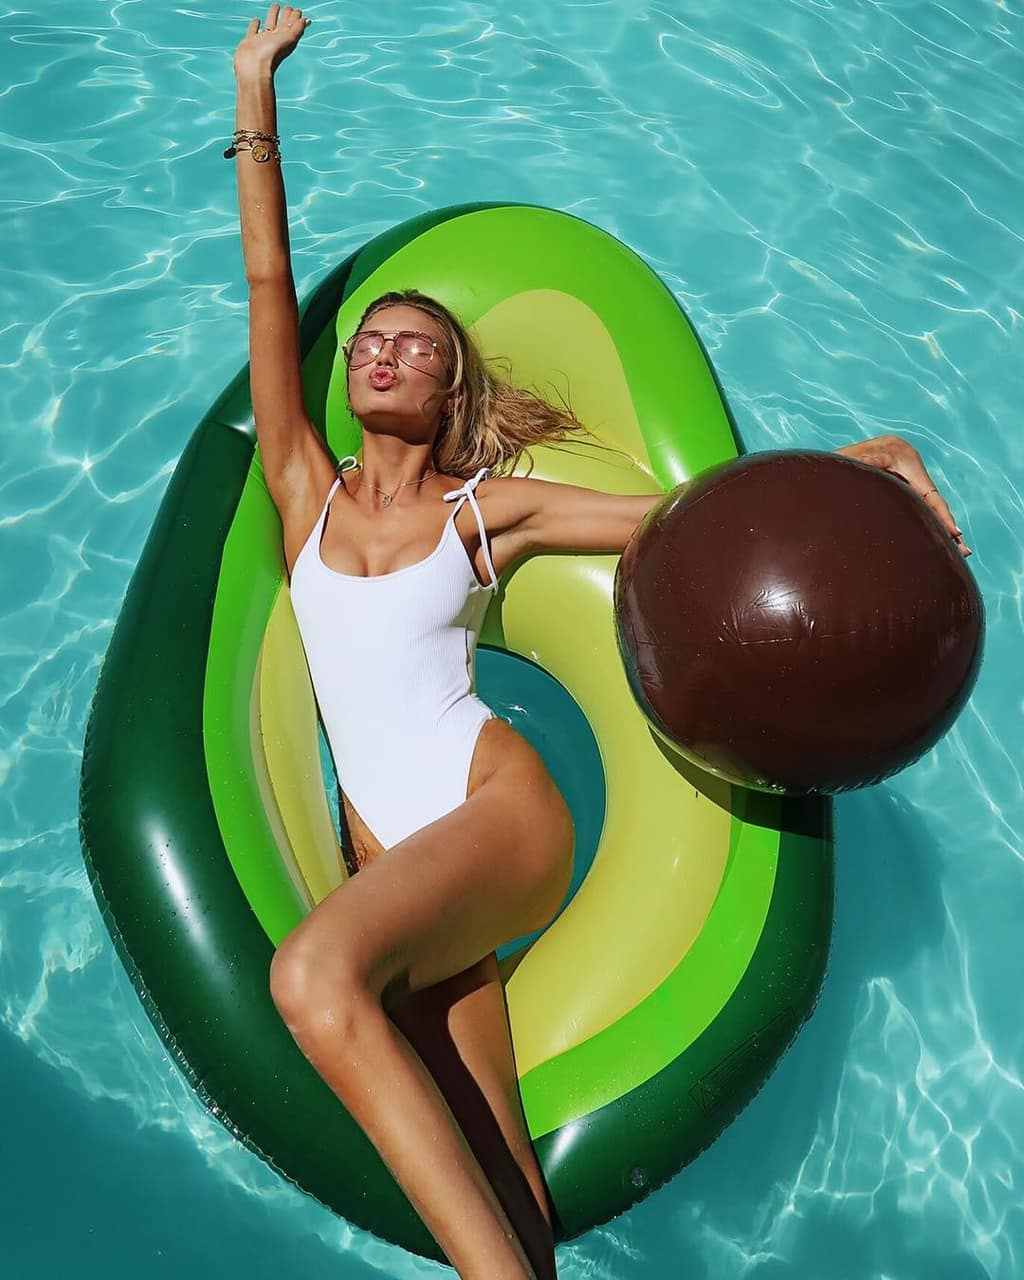 romee strijd, model, and summer image